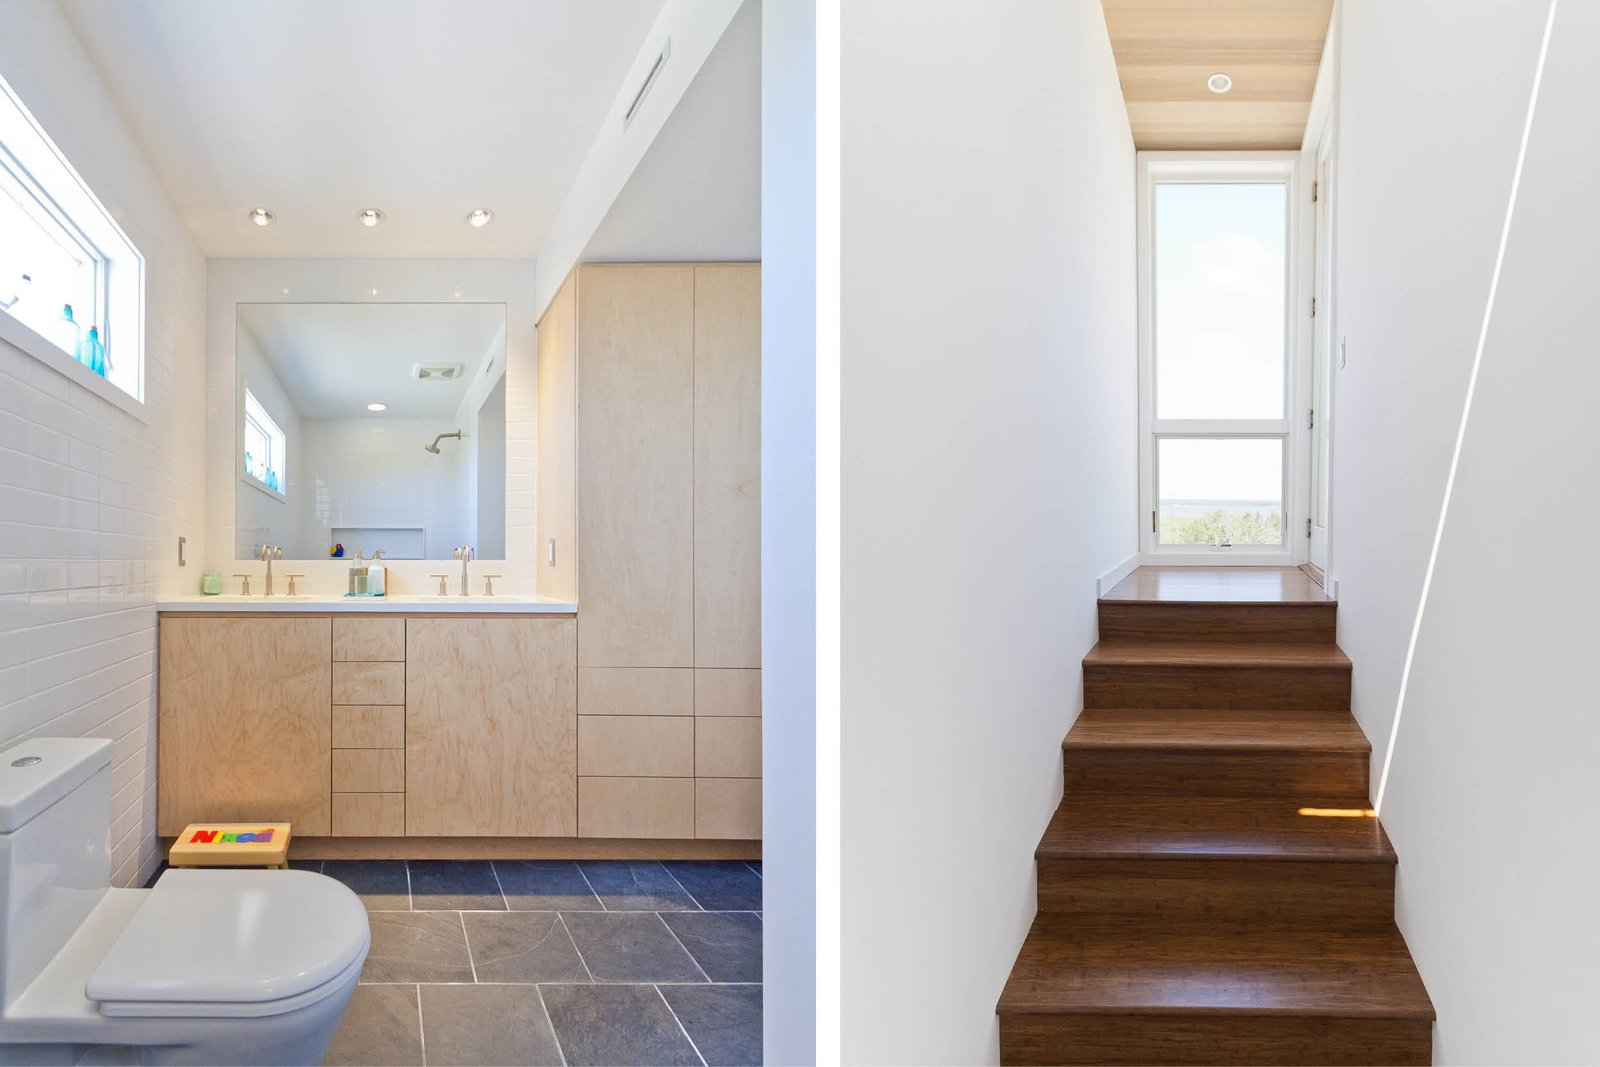 Engineered Quartz Counter, Limestone Floor, Undermount Sink, One Piece Toilet, Subway Tile Wall, Ceiling Lighting, Staircase, and Wood Tread Guest bathroom/Stair to roof deck  Dune Road Beach House by Resolution: 4 Architecture